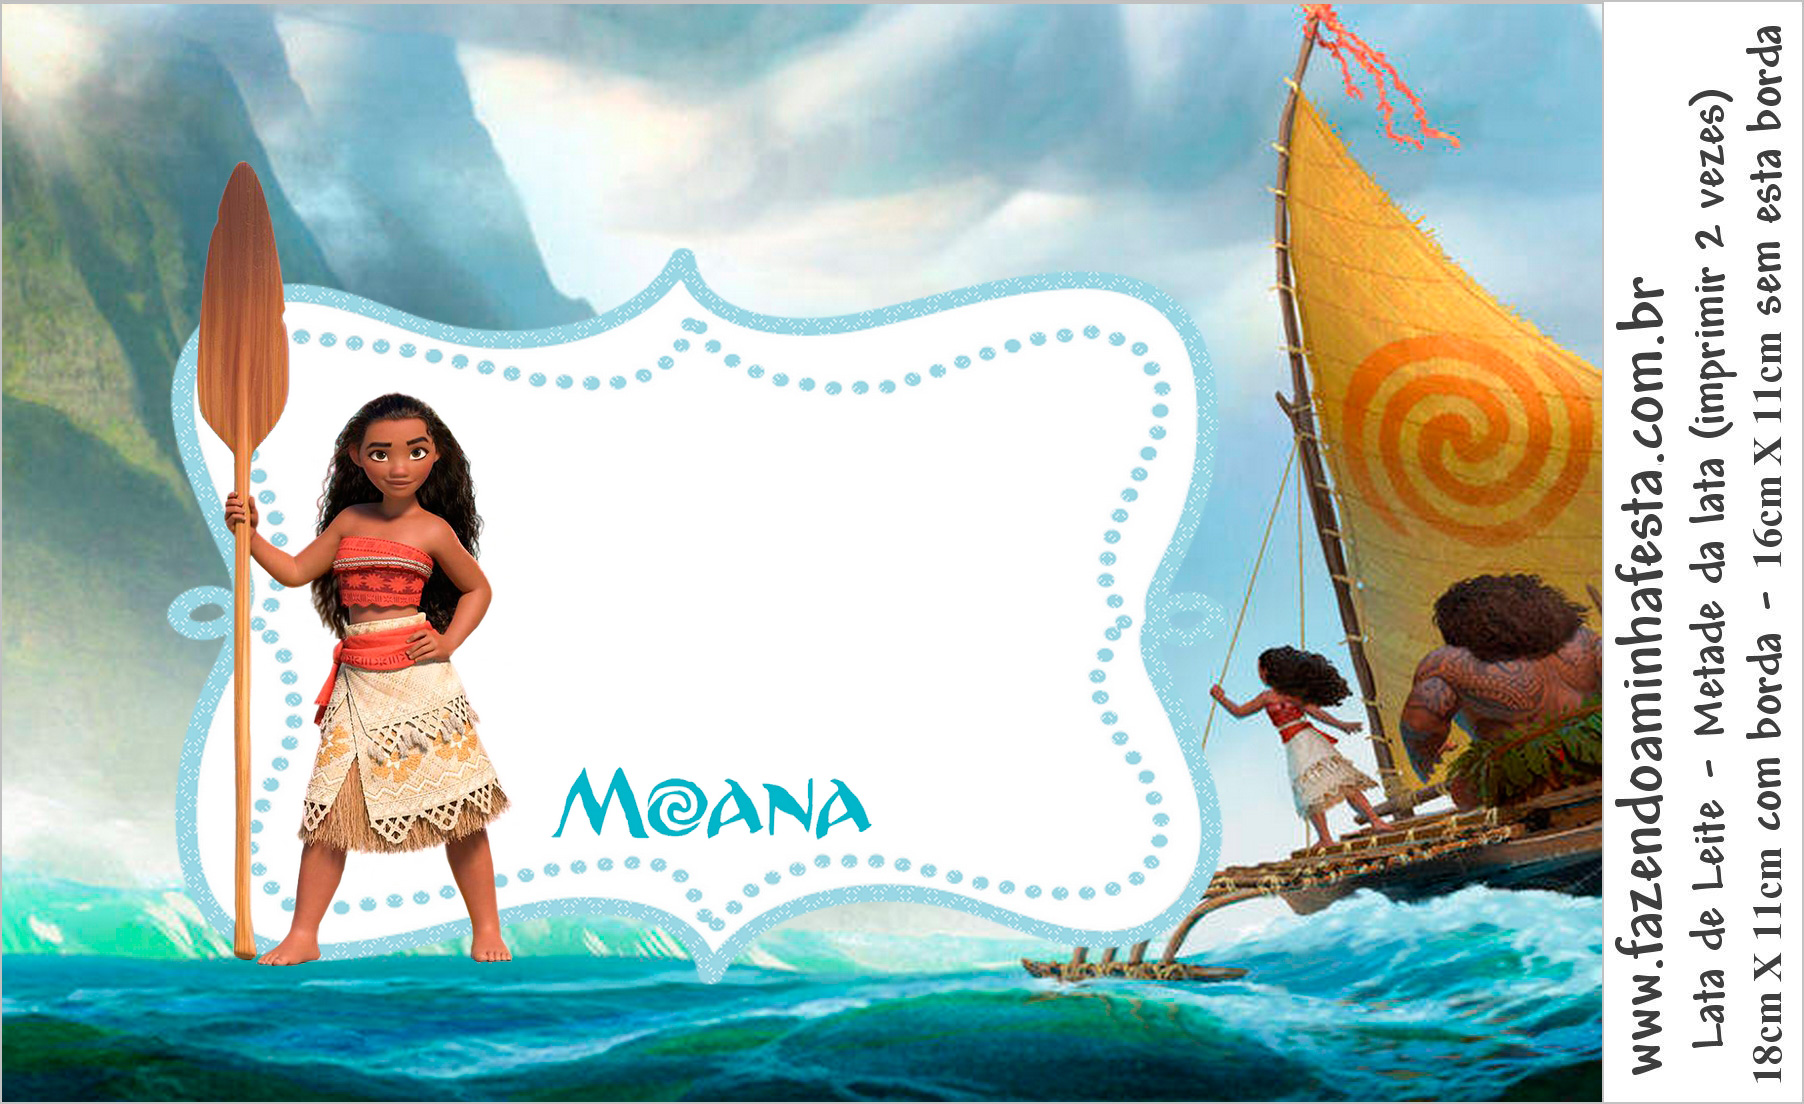 08 mini mini kit kit moana moana disney printables br 2016 2016 08 ...